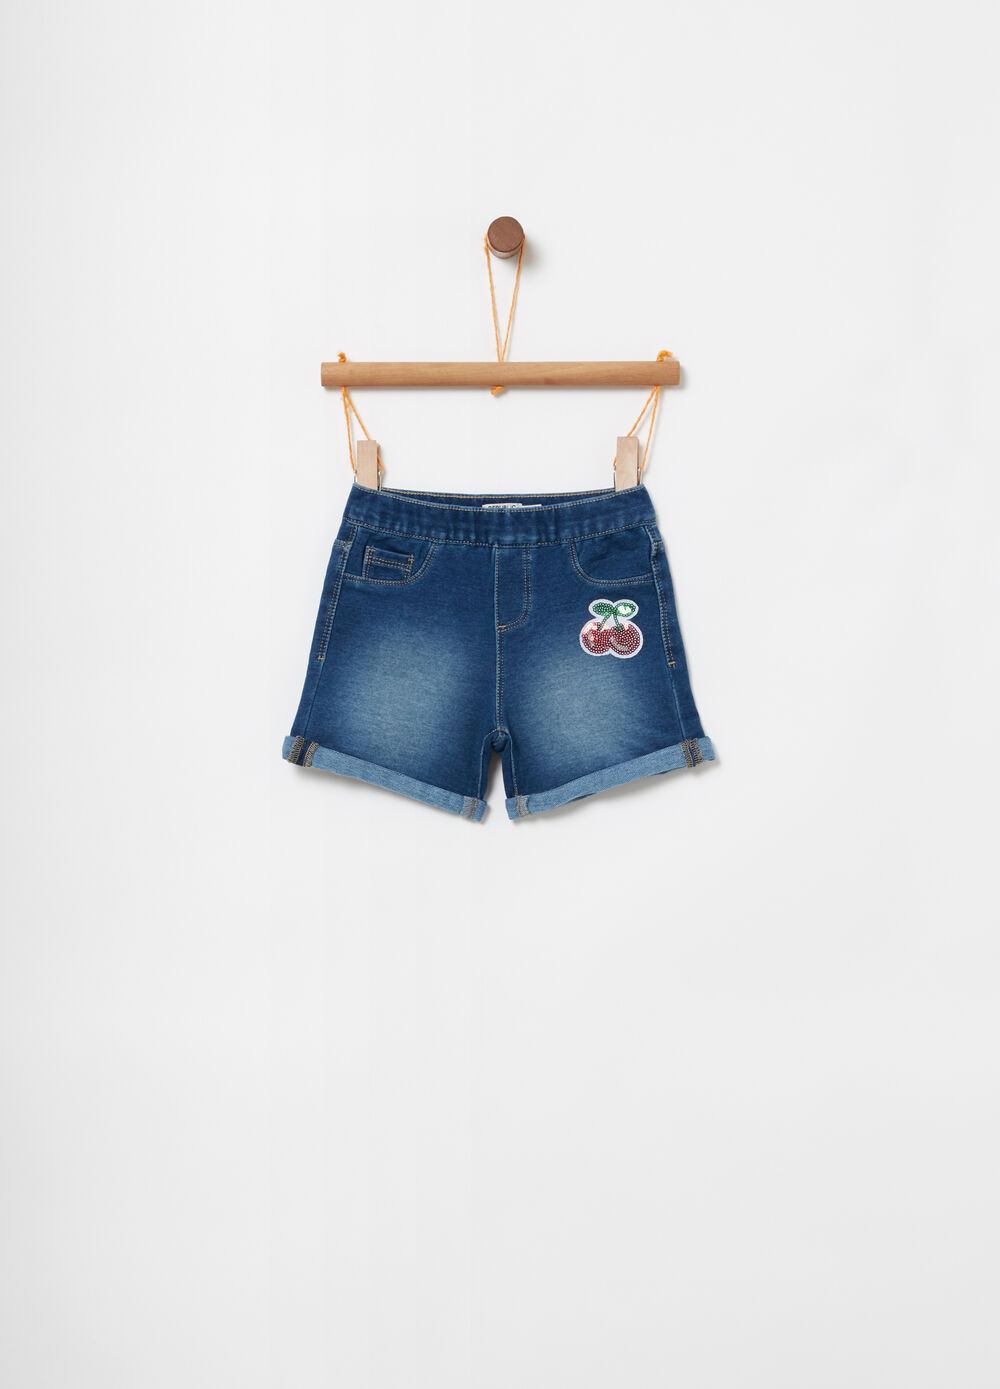 Shorts denim vita elasticata e paillettes